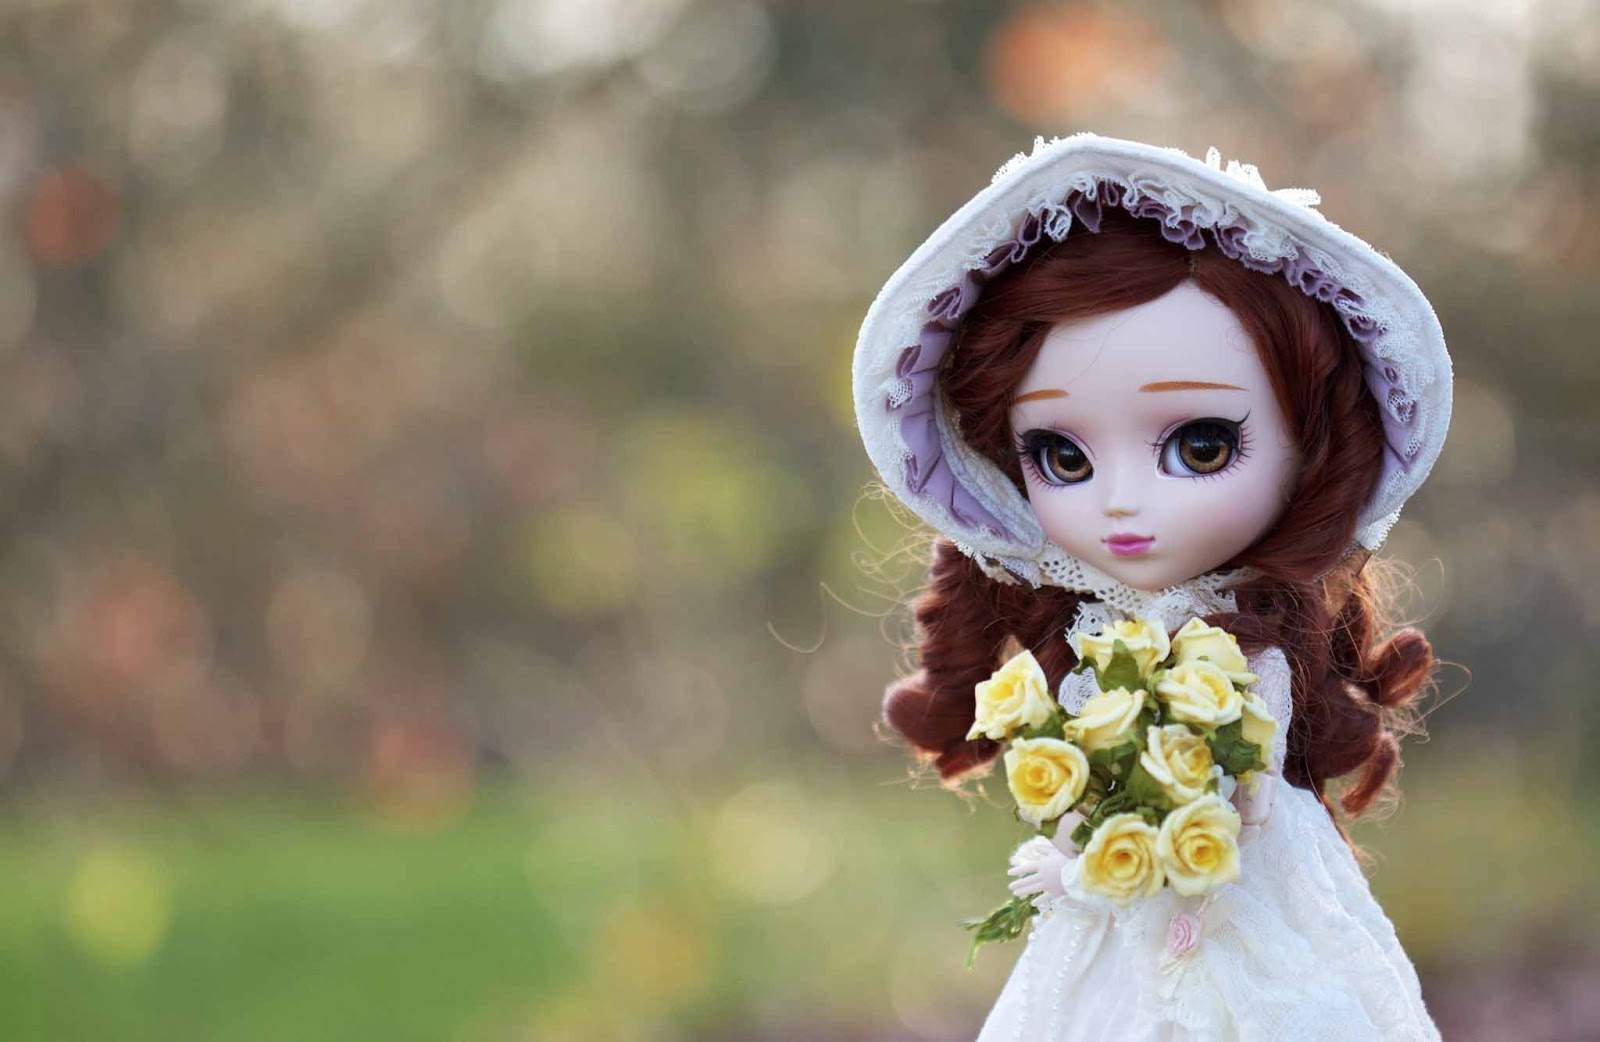 Hd wallpaper doll - Hd Wallpapers Toys Doll Wallpapers